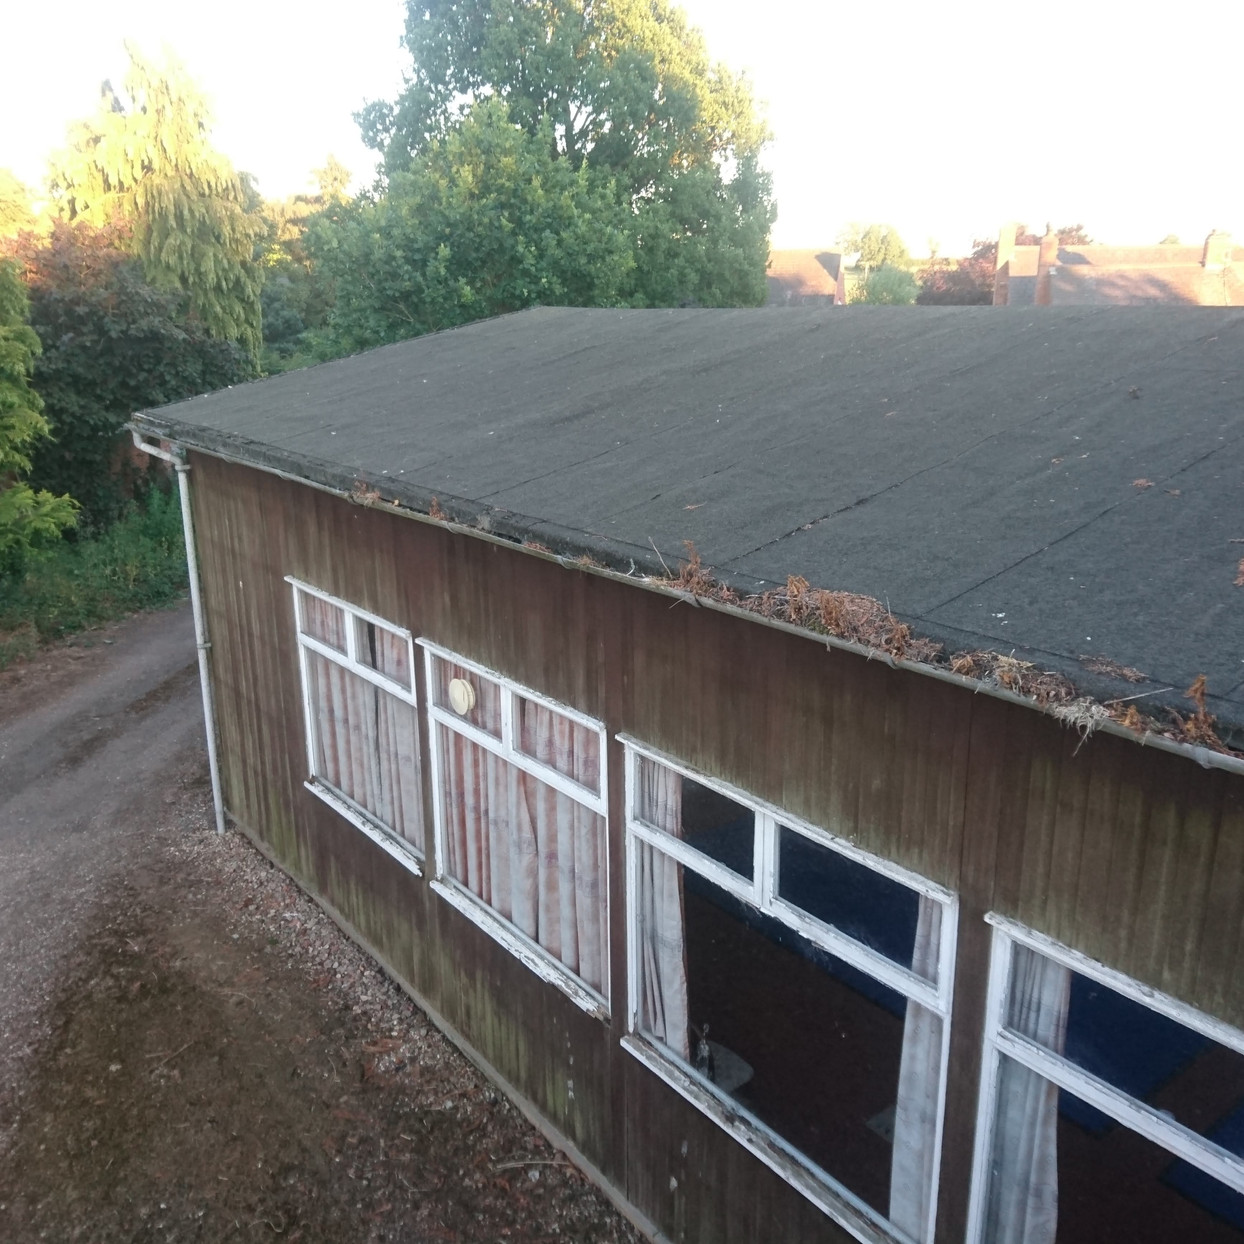 Roof before renovation